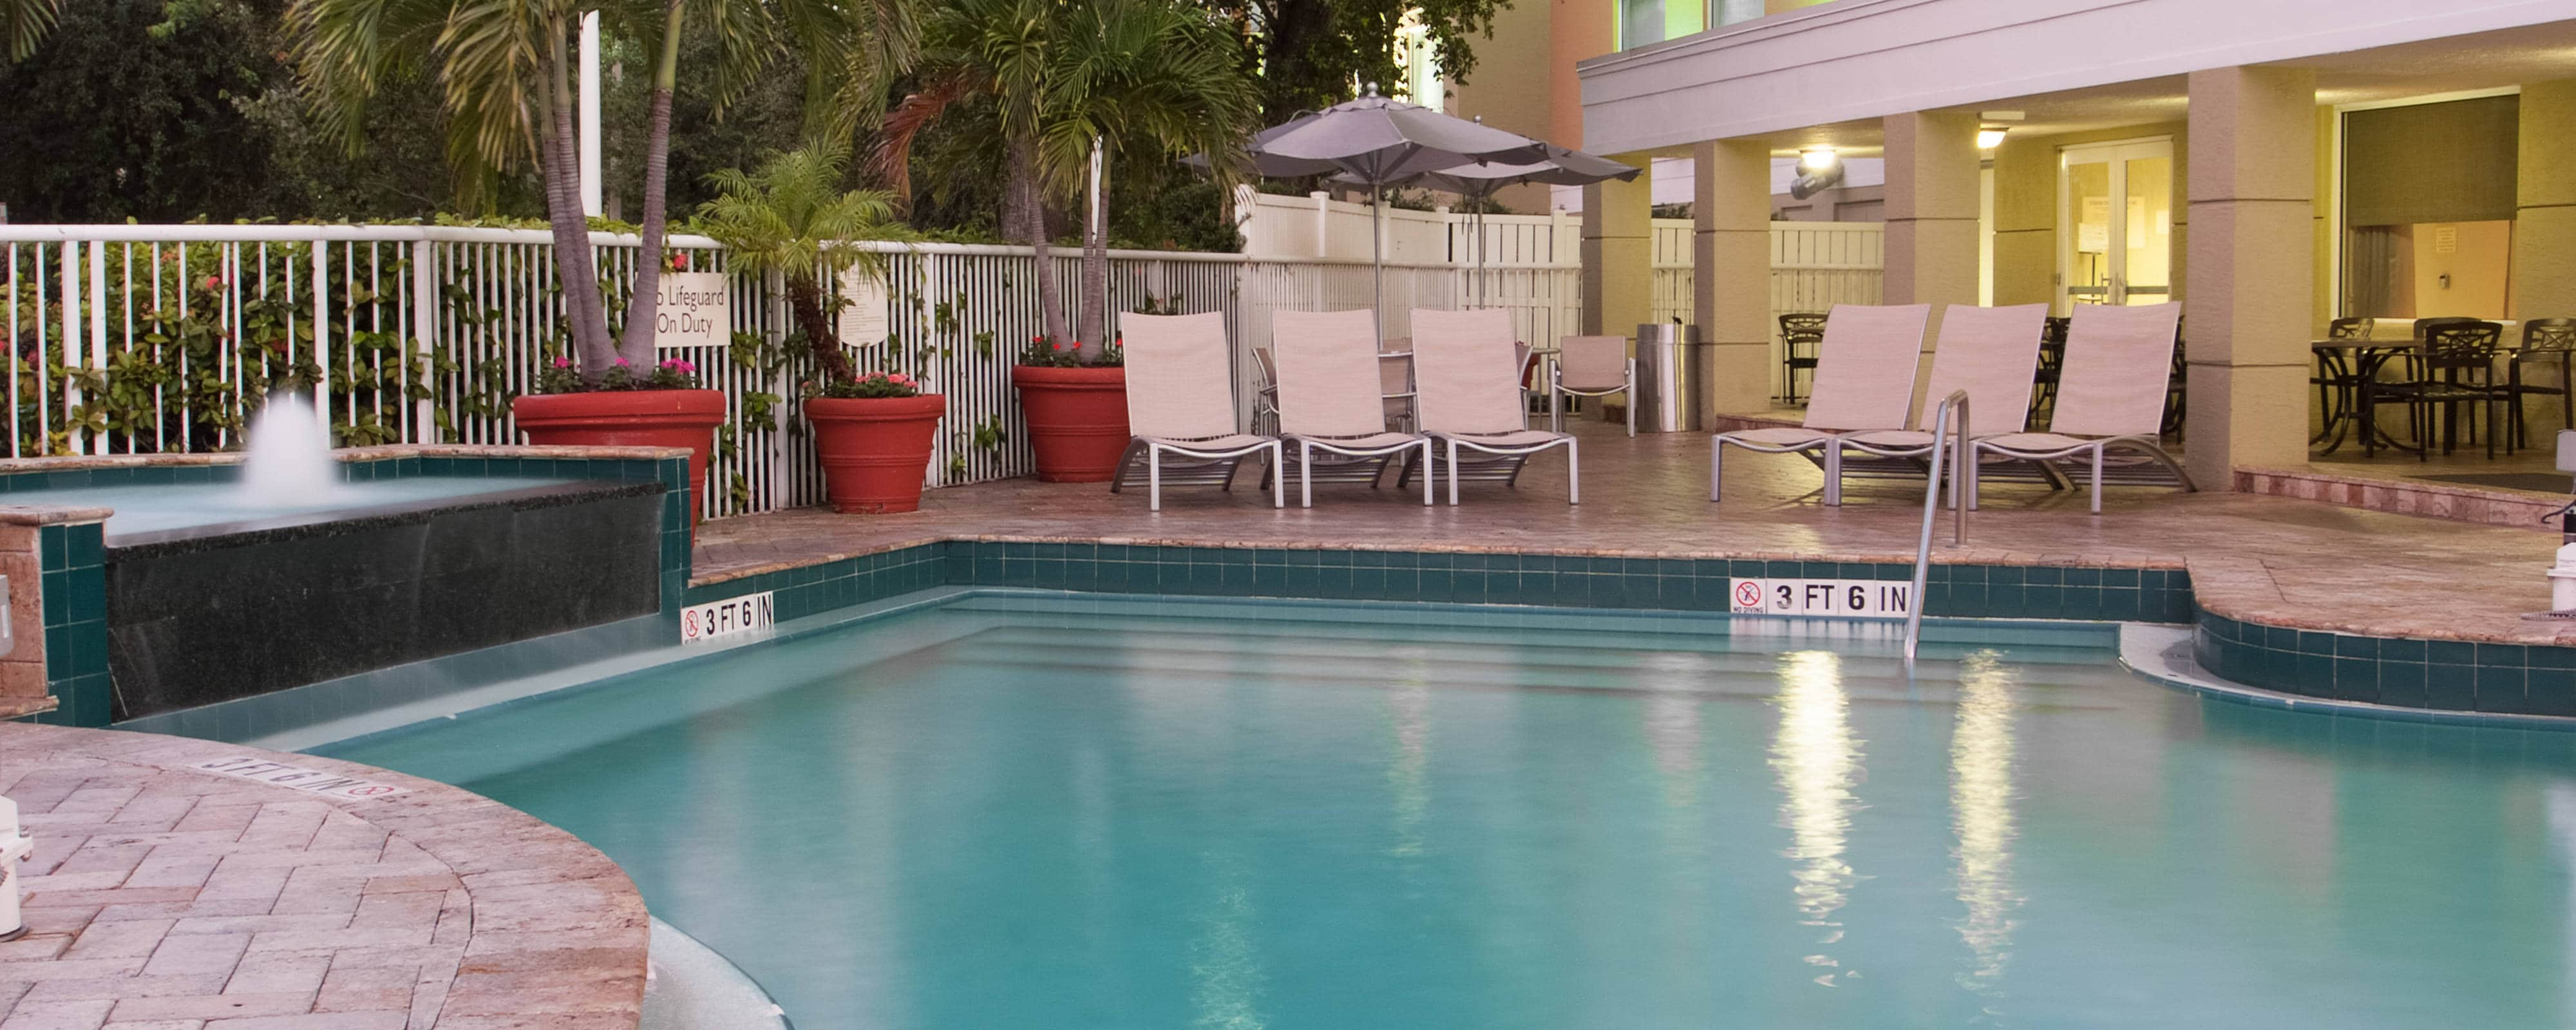 Fort Lauderdale Hotel Outdoor Pool